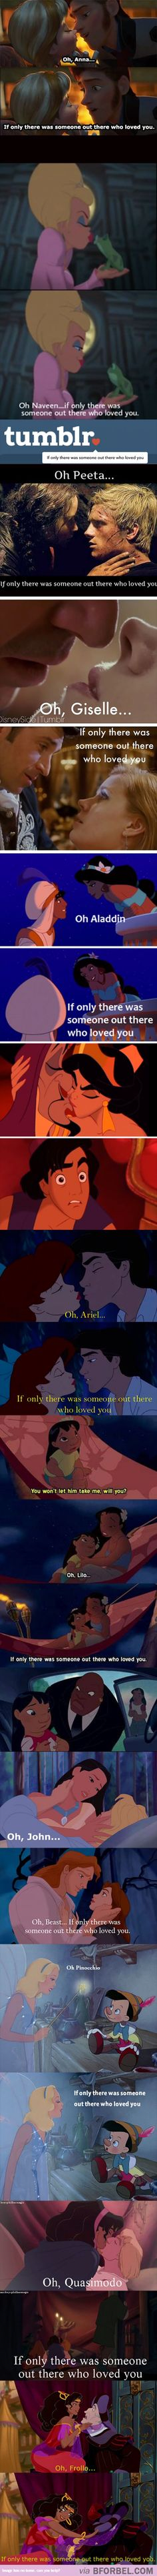 What If Other Disney (And Hunger Games) Characters Spoke Hans' Words? I like the Tumblr one...